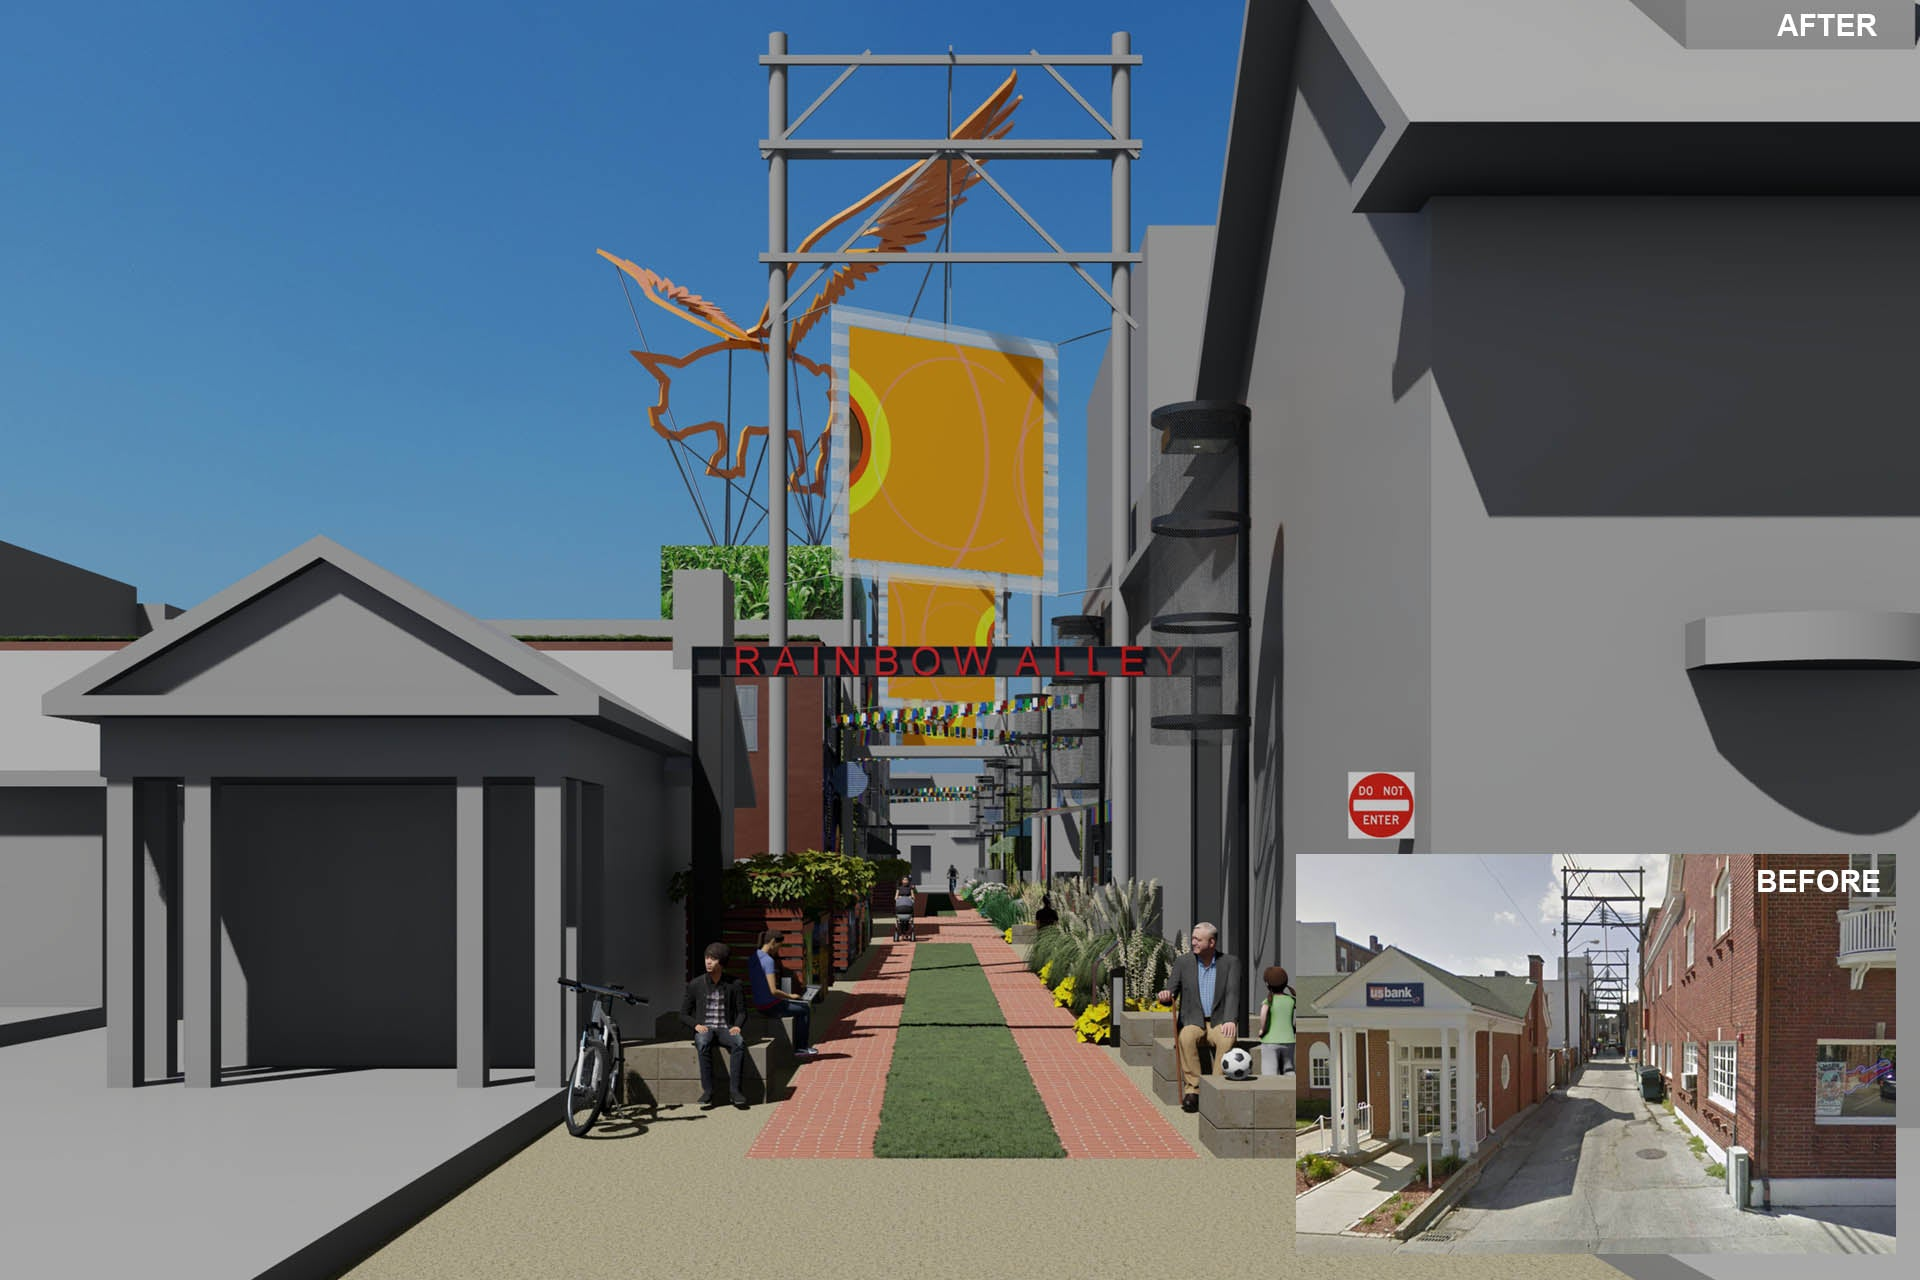 ICDD Alley Revitalization Proposal